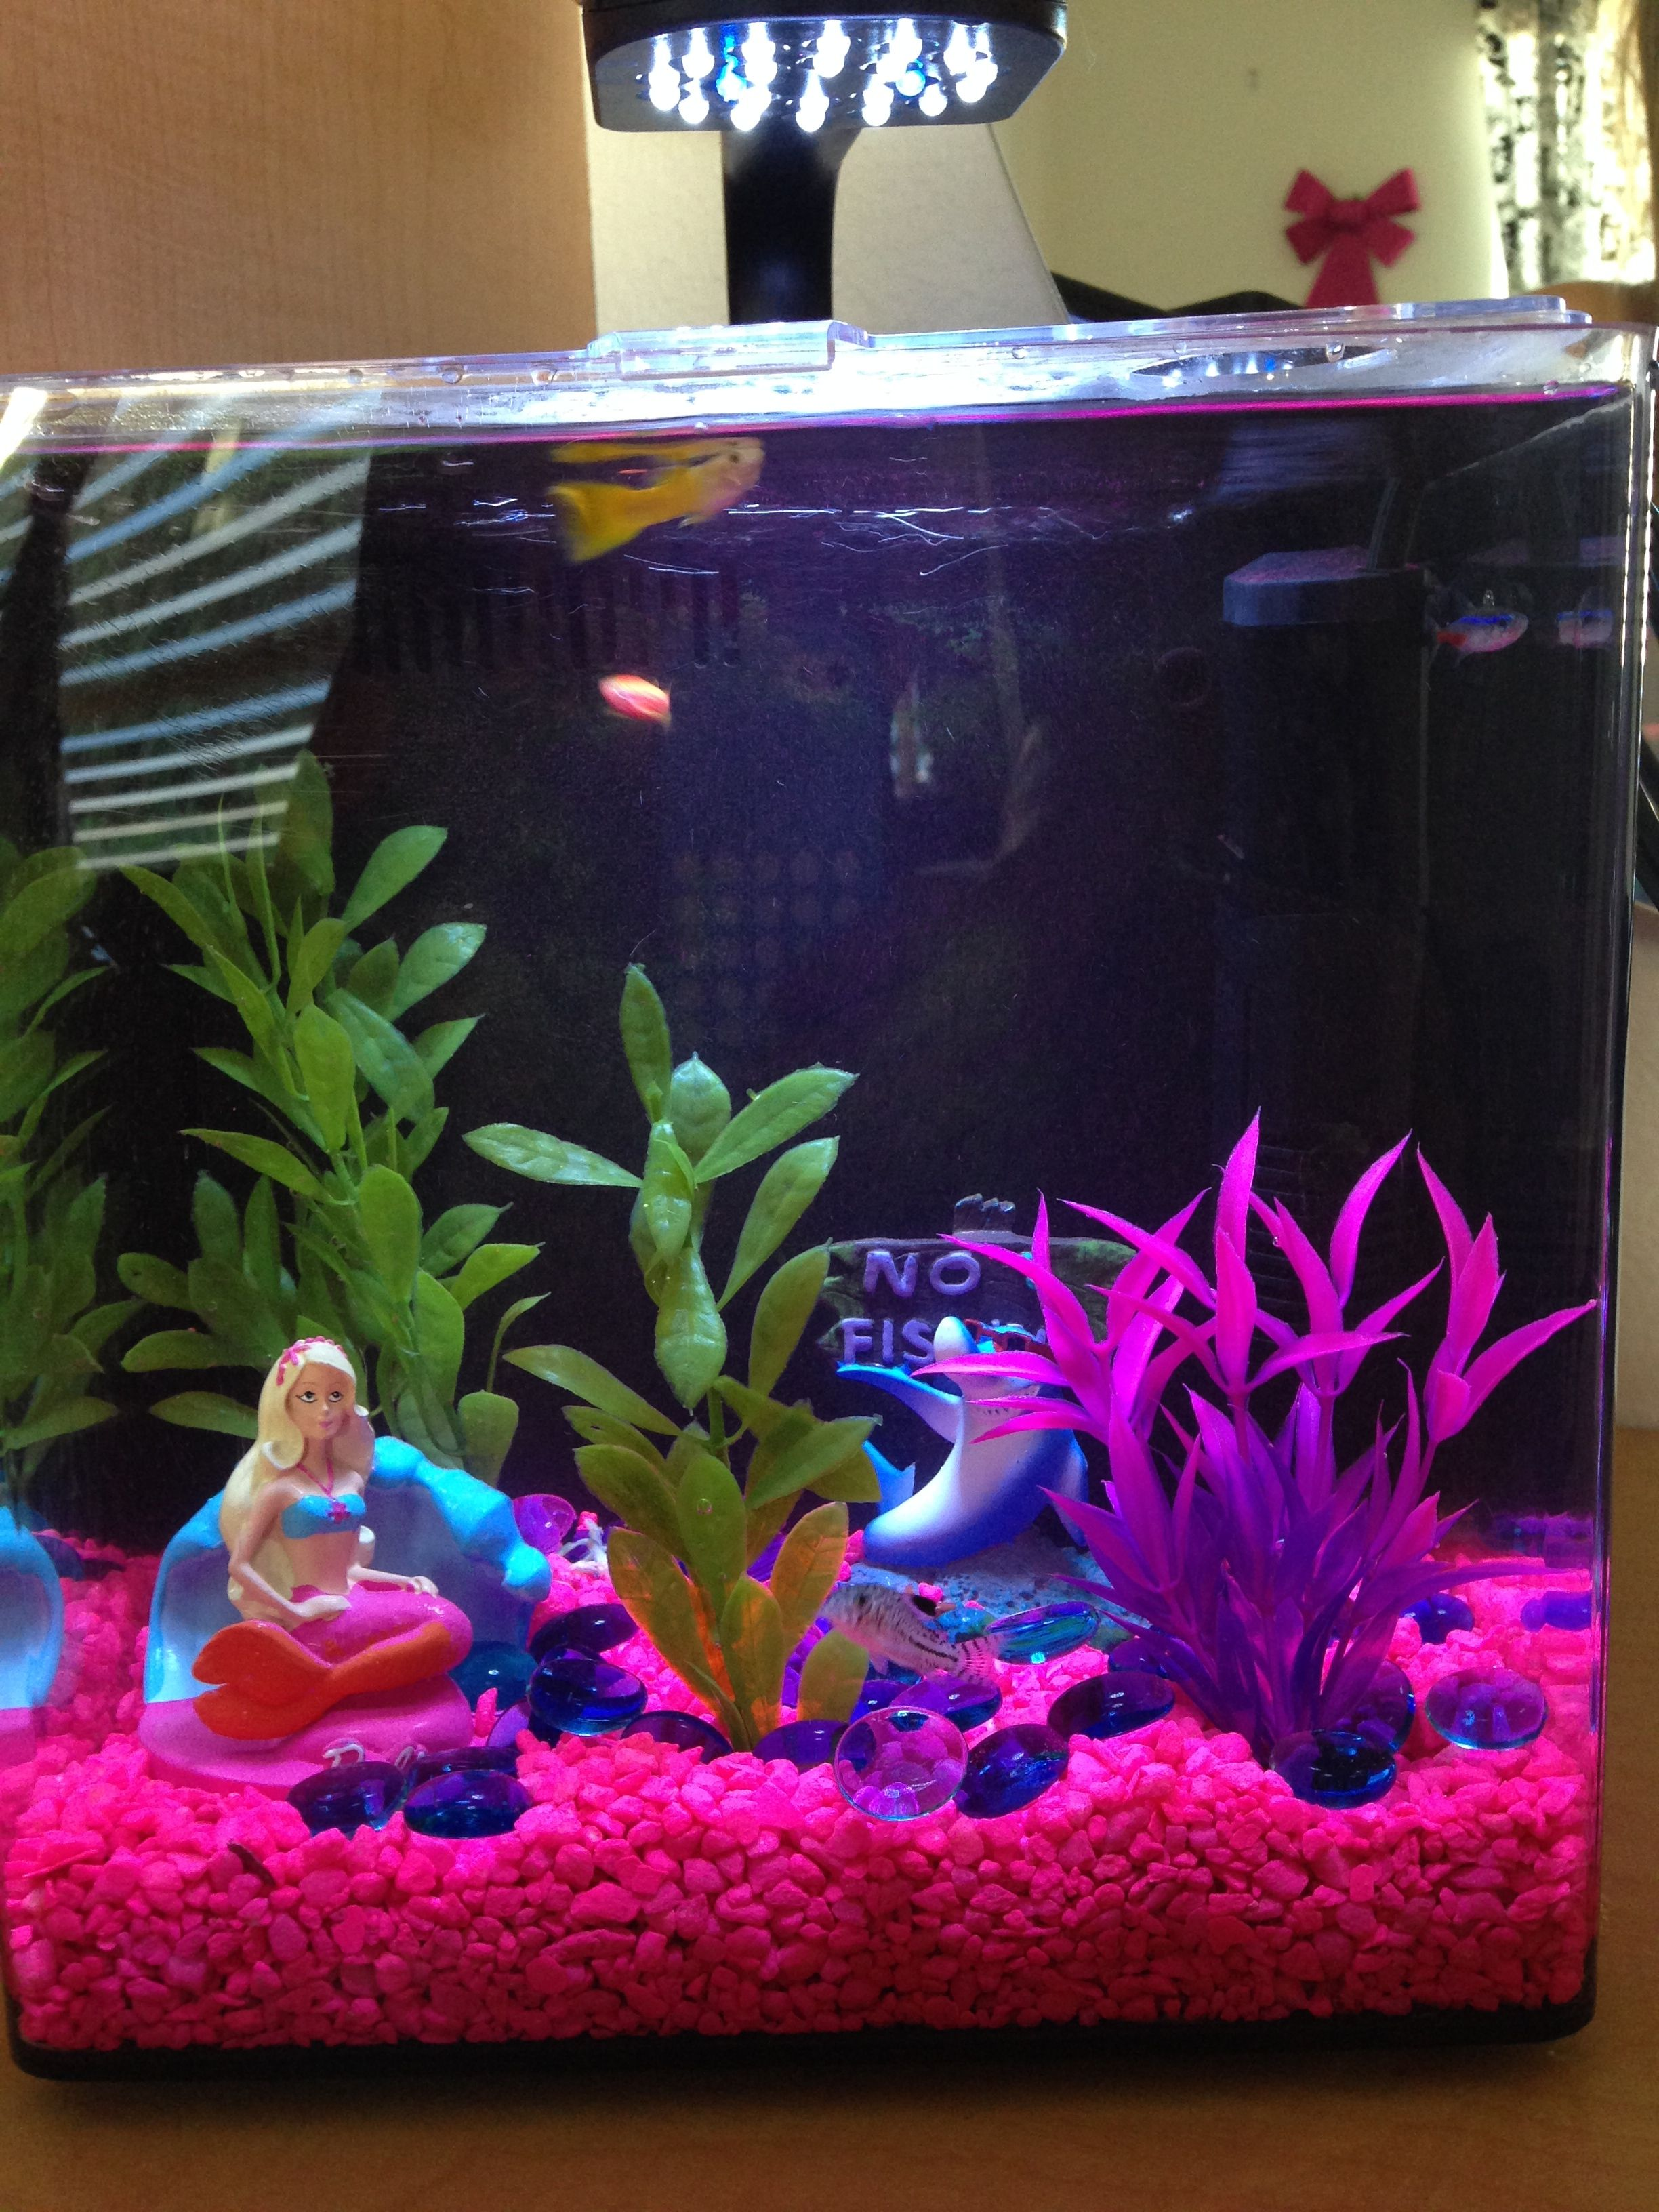 Fish tank in spanish - My Barbie Themed Fish Tank